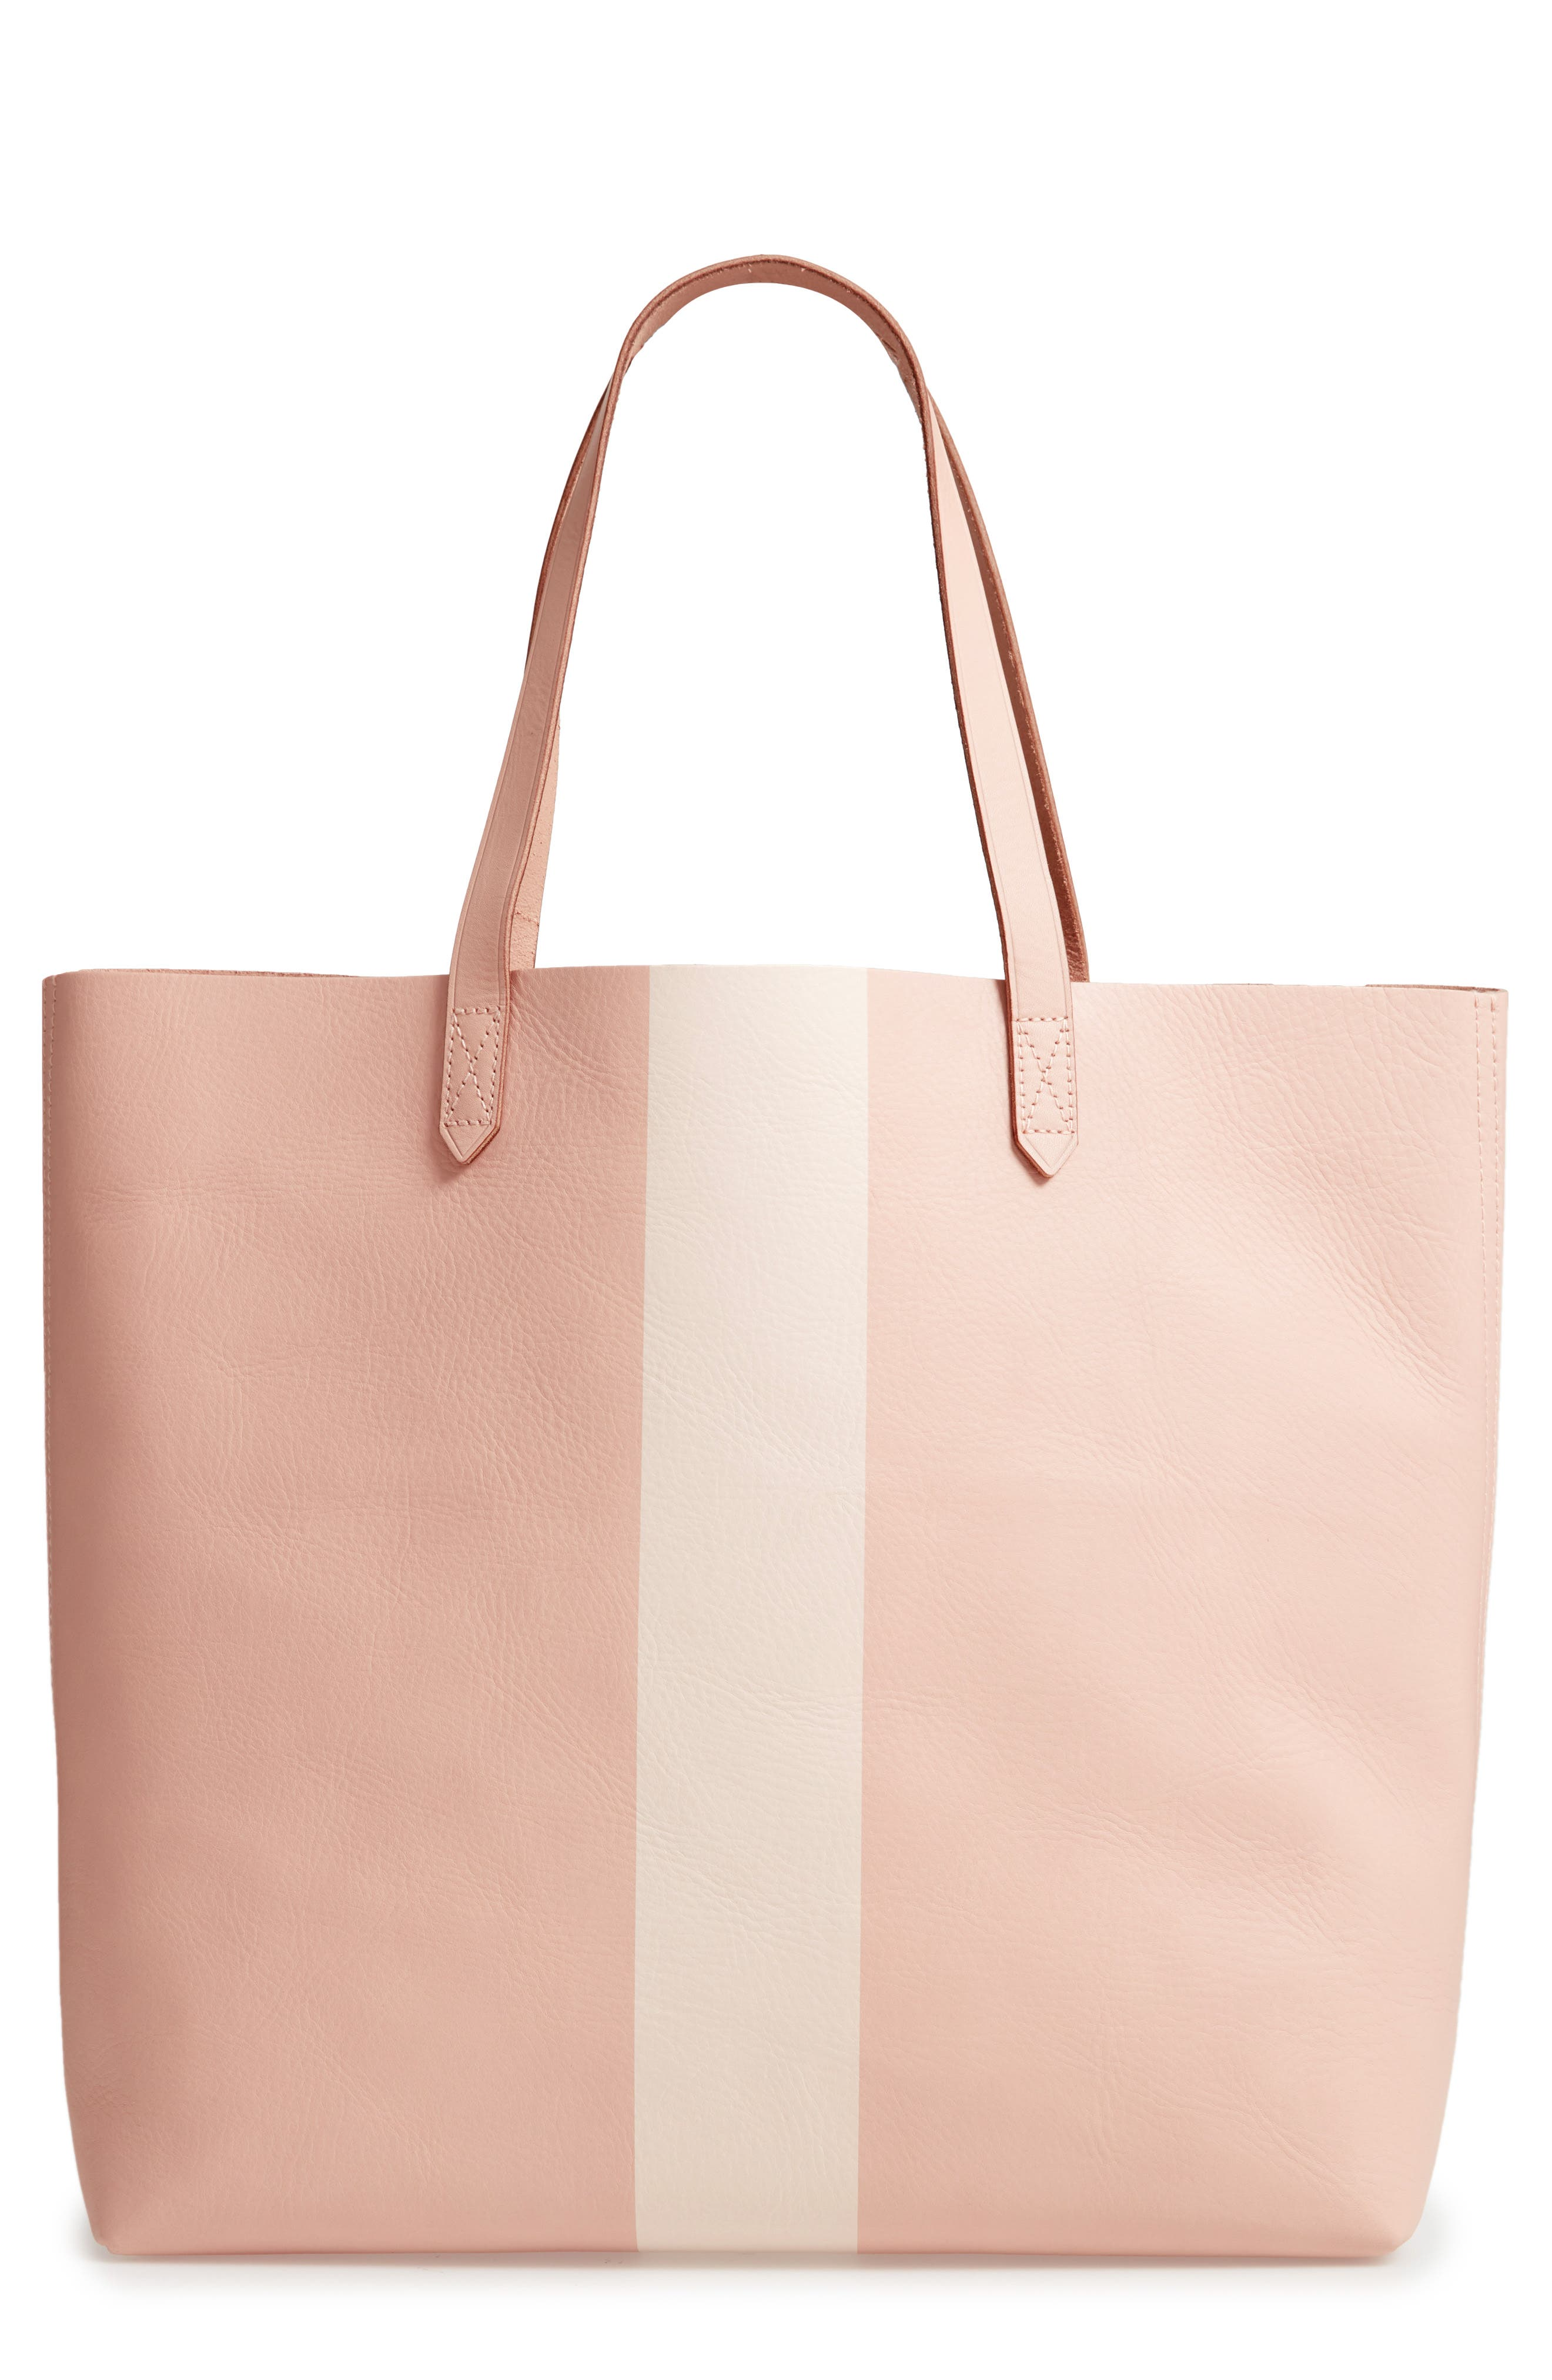 Paint Stripe Transport Leather Tote,                             Main thumbnail 1, color,                             SHEER PINK STRIPE